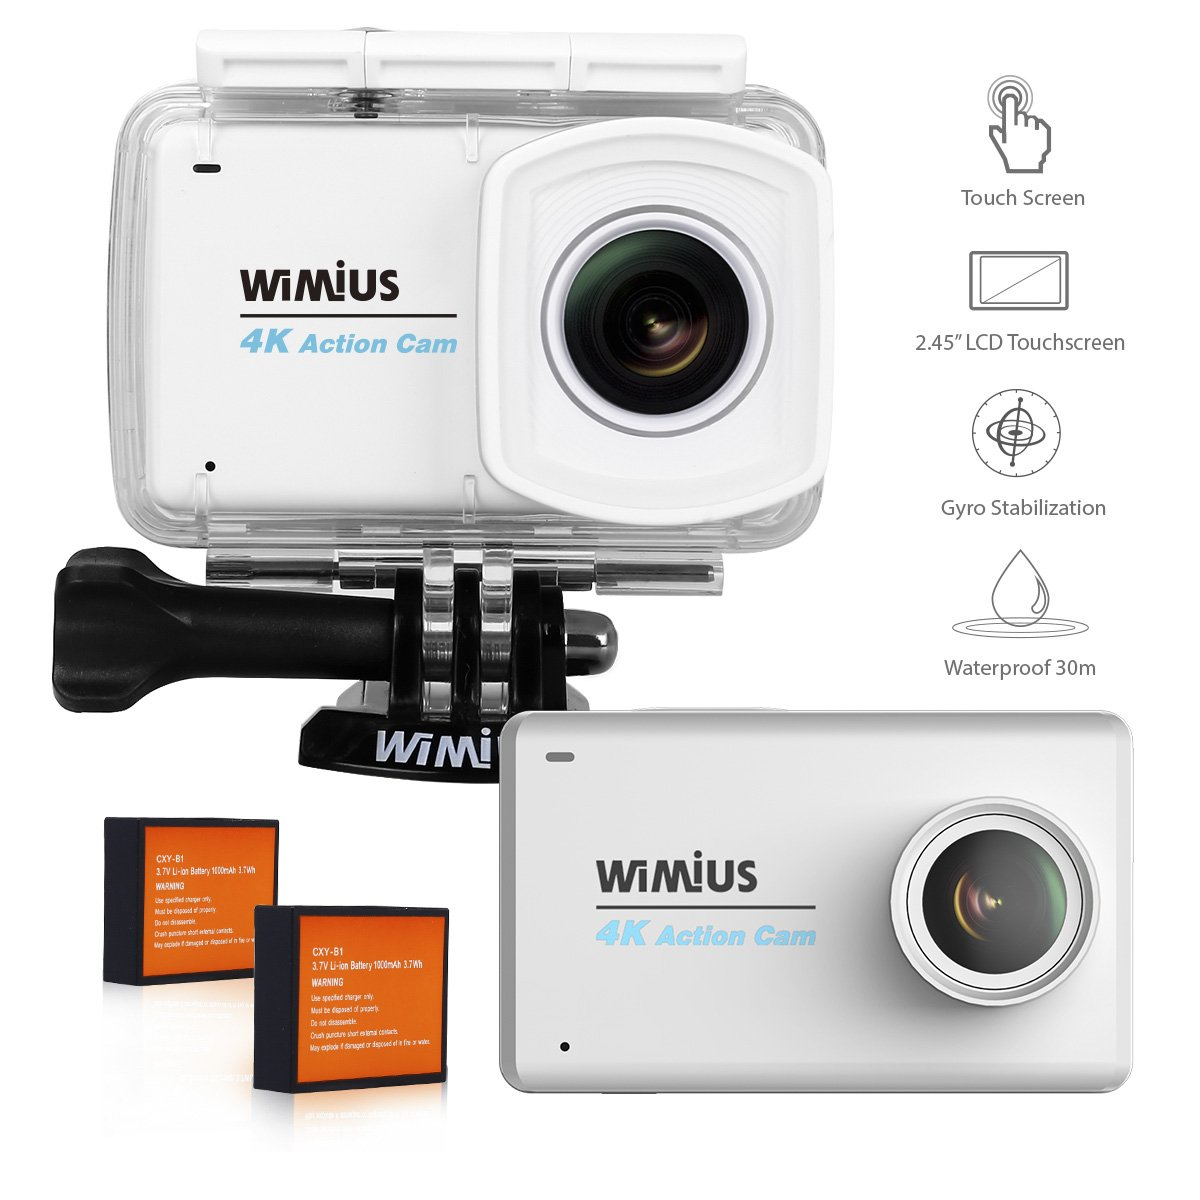 WiMiUS Touchscreen Action Camera 4K 2.45'' LCD Touch Screen 16MP 1080P 30M Underwater Cameras Wifi Waterproof Cam Sports Camcorder 170° Wide-Angle Lens Helmet Camera with Accessories Kit, L3 Silver by WiMiUS